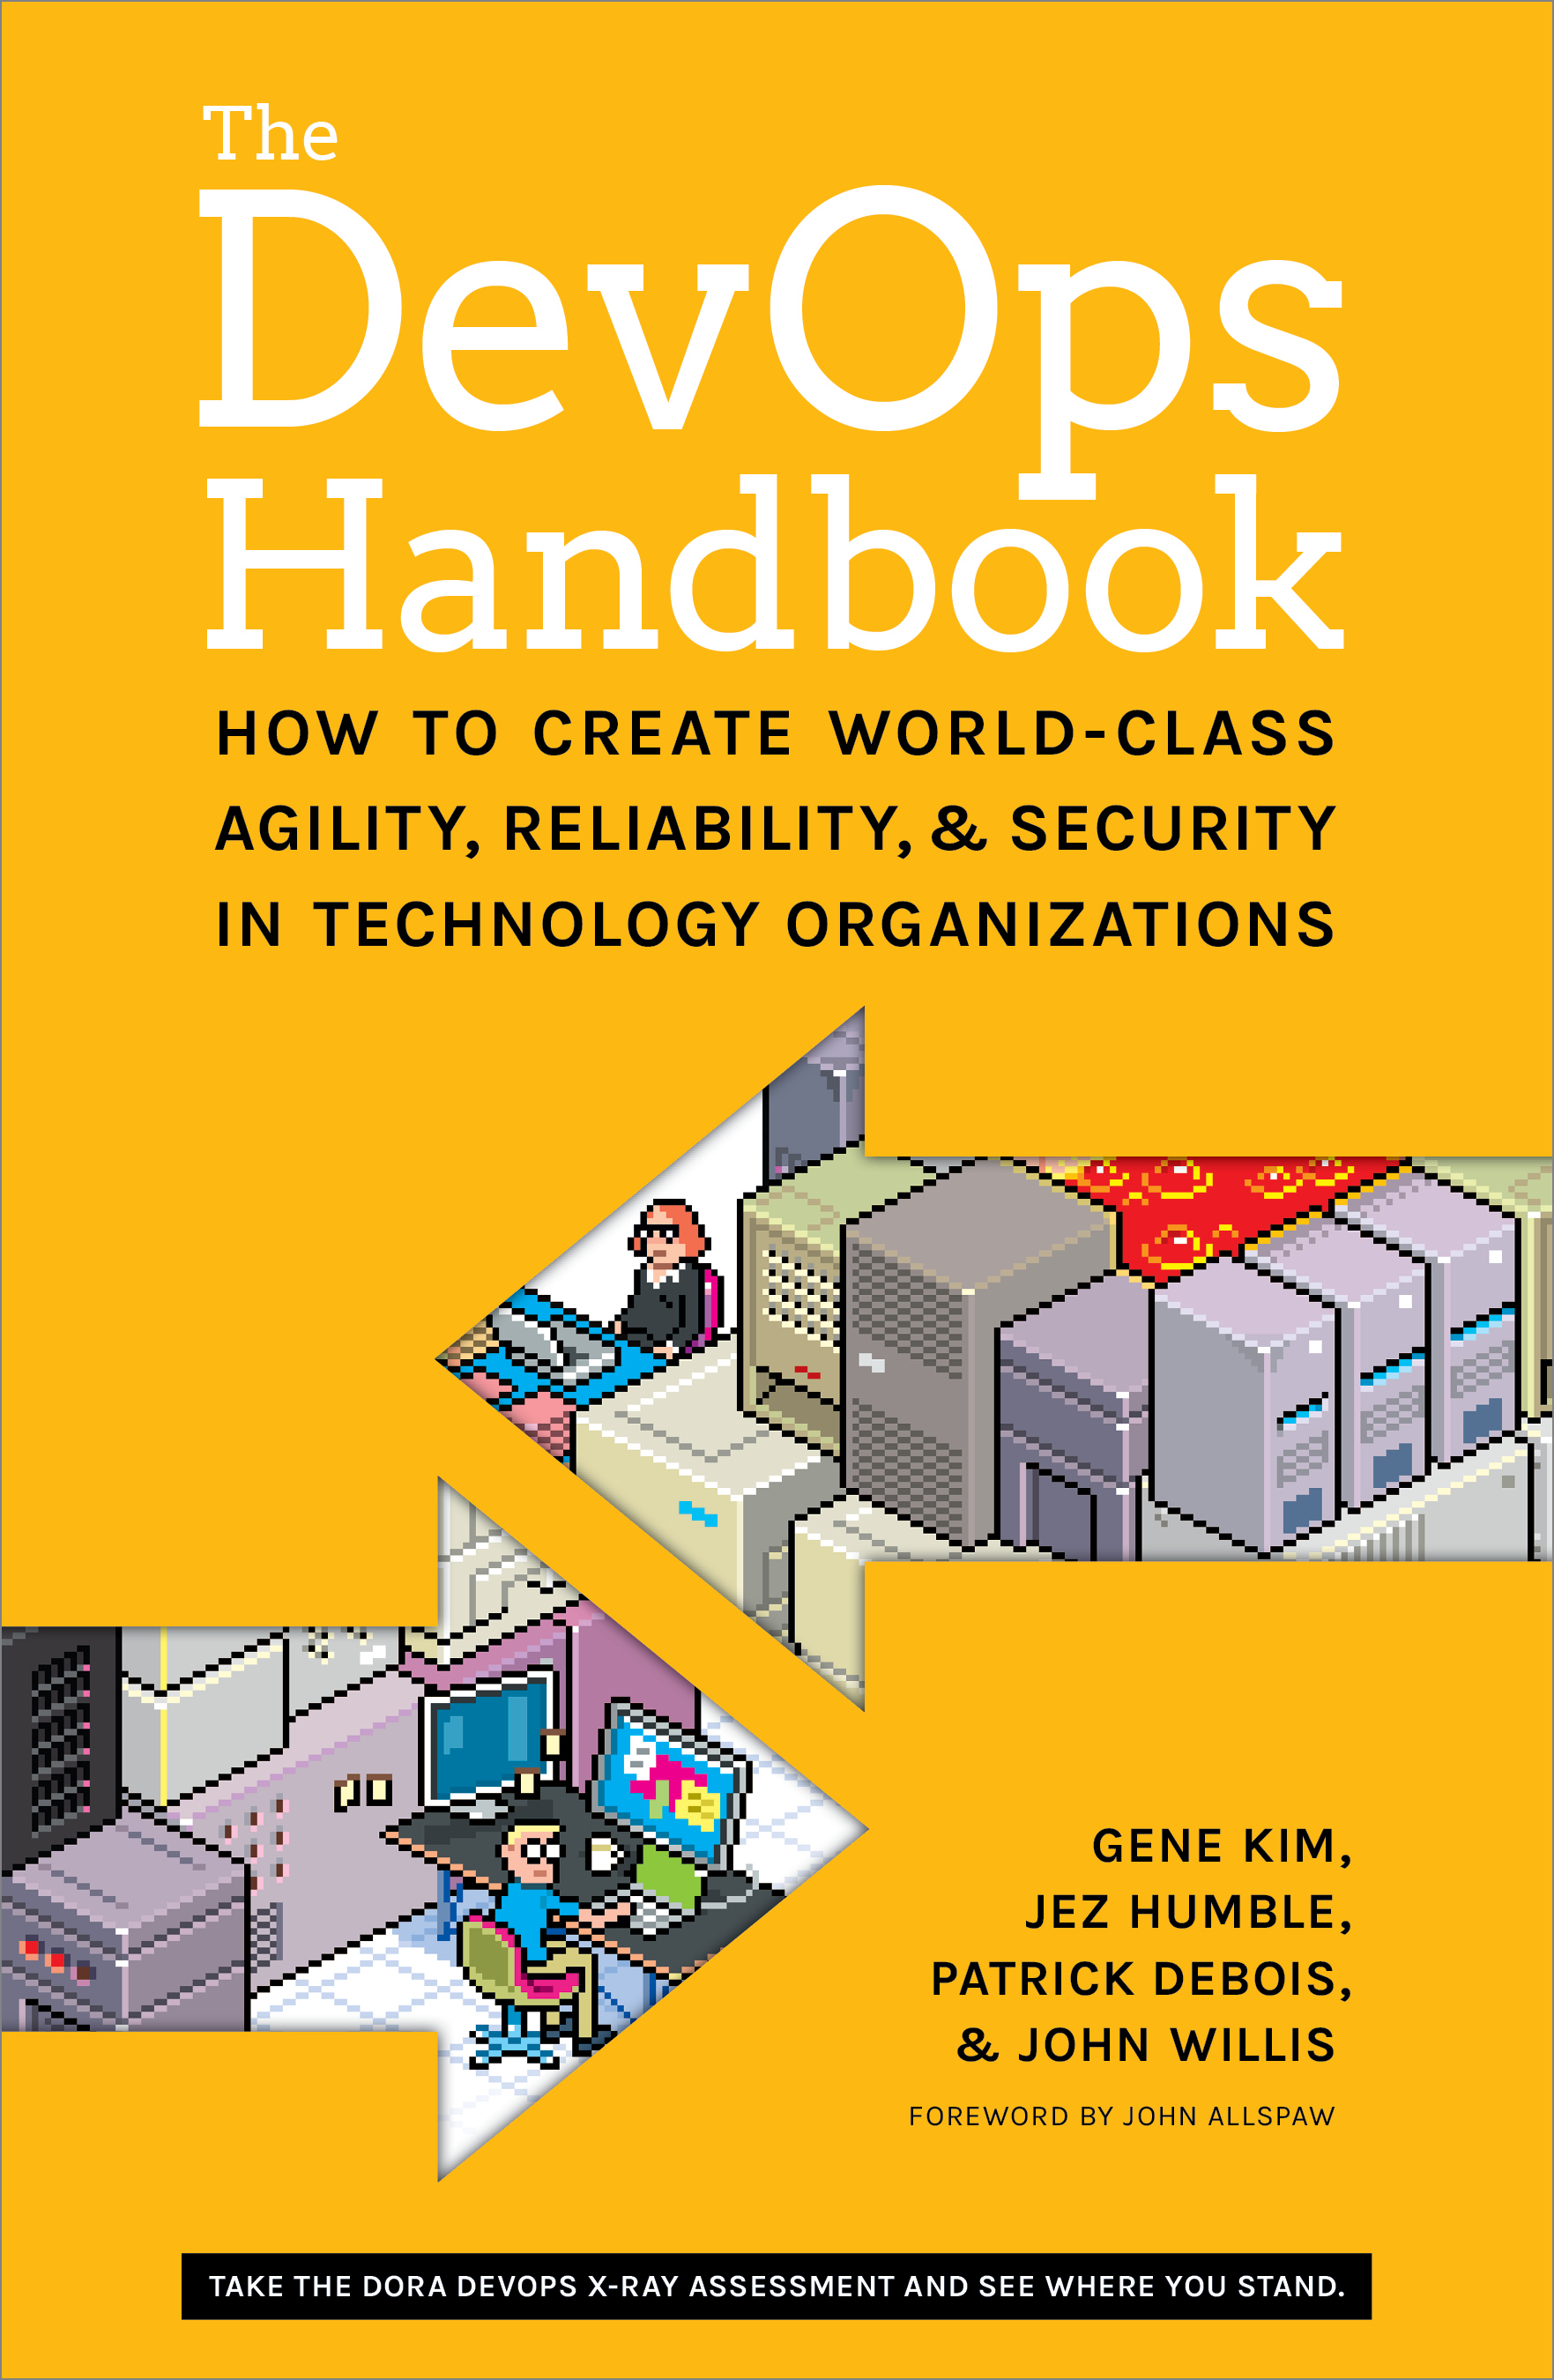 The DevOps Handbook by Gene Kim, Jez Humble, Patrick Debois, and John Willis